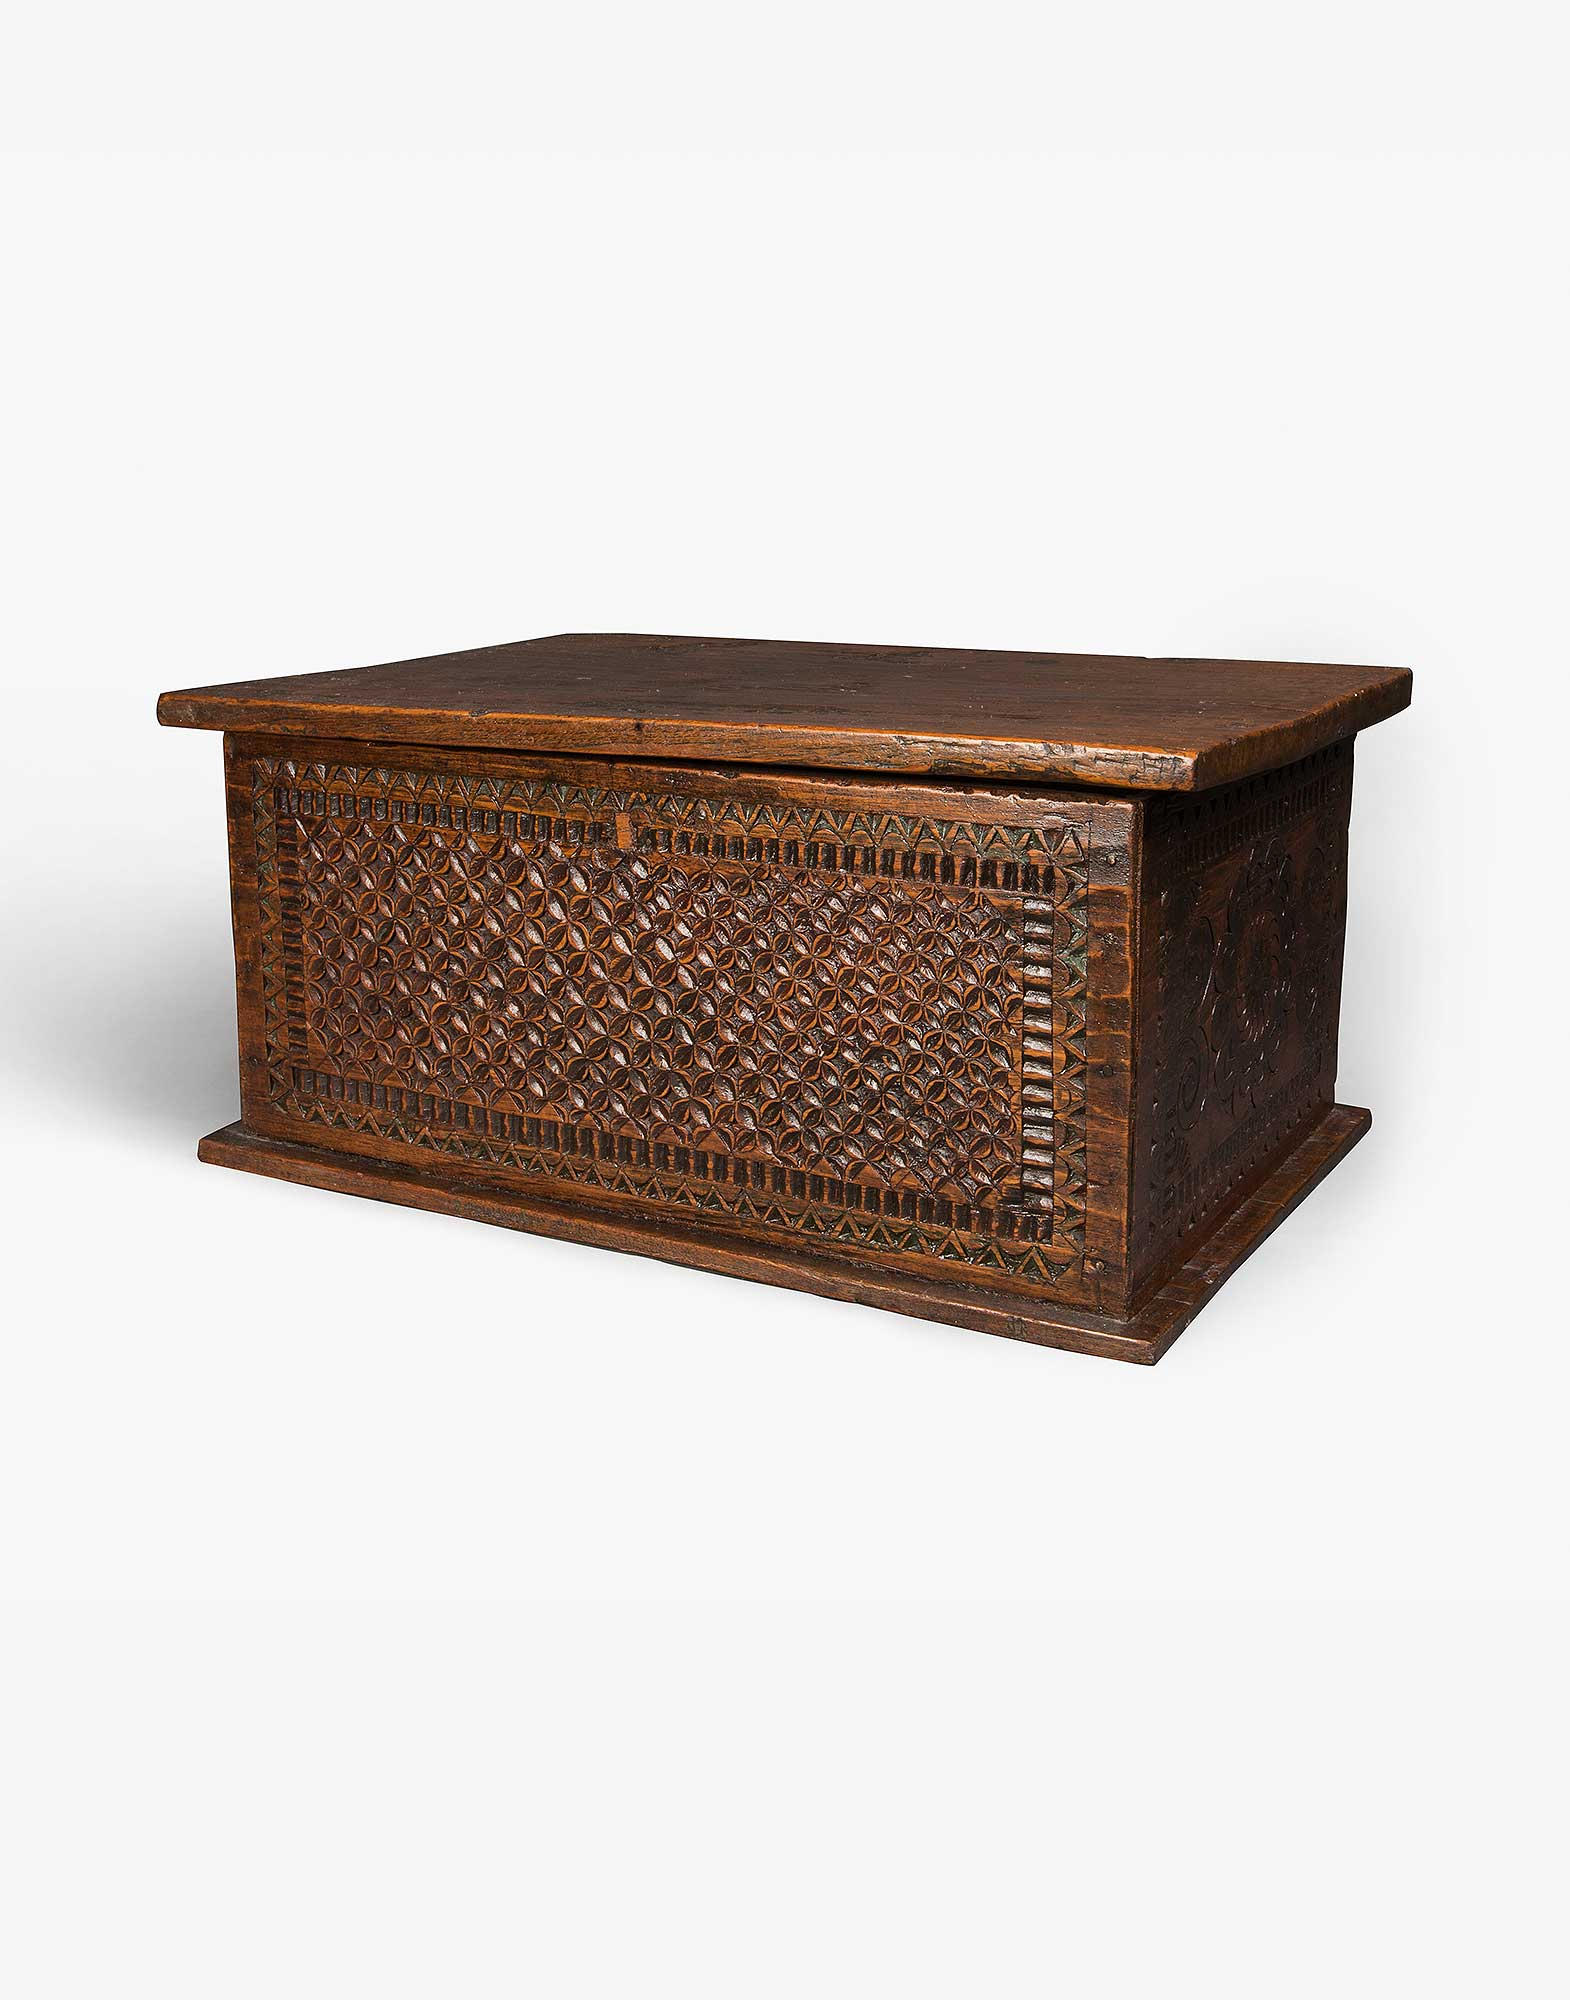 Indonesian Antique Wooden Chest